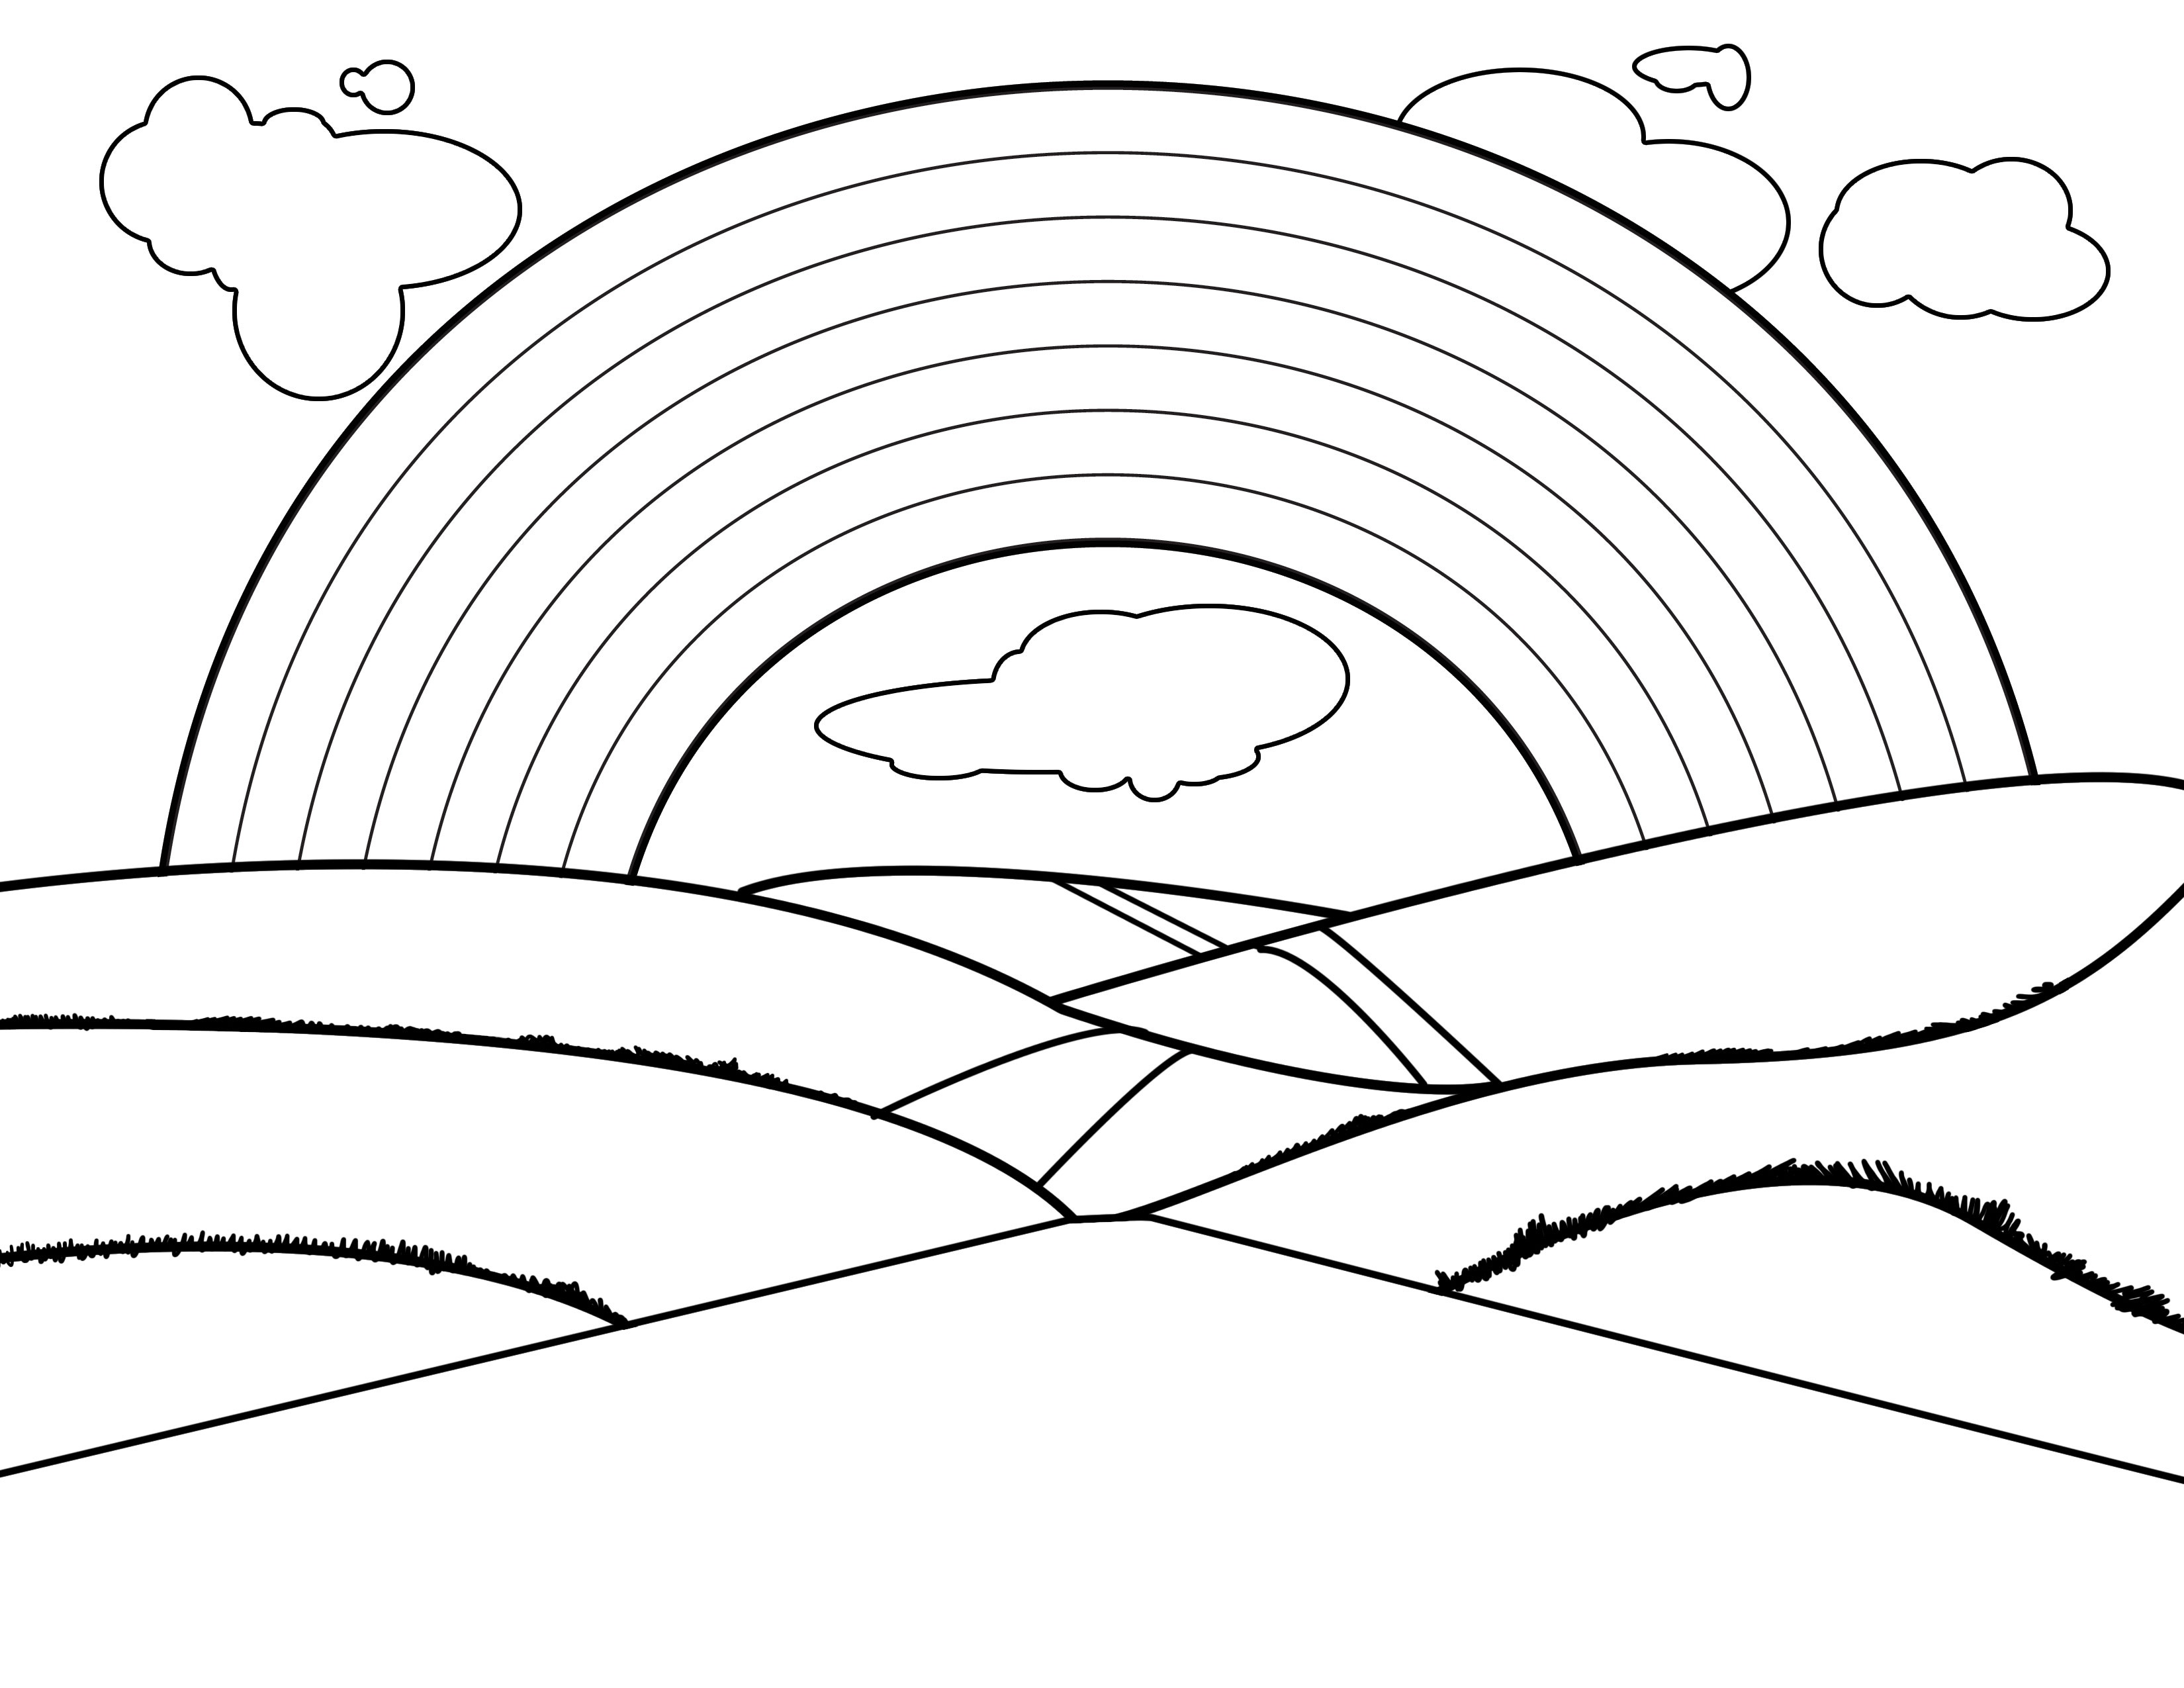 rainbow coloring pages free printable rainbow coloring pages for kids rainbow coloring pages 1 1